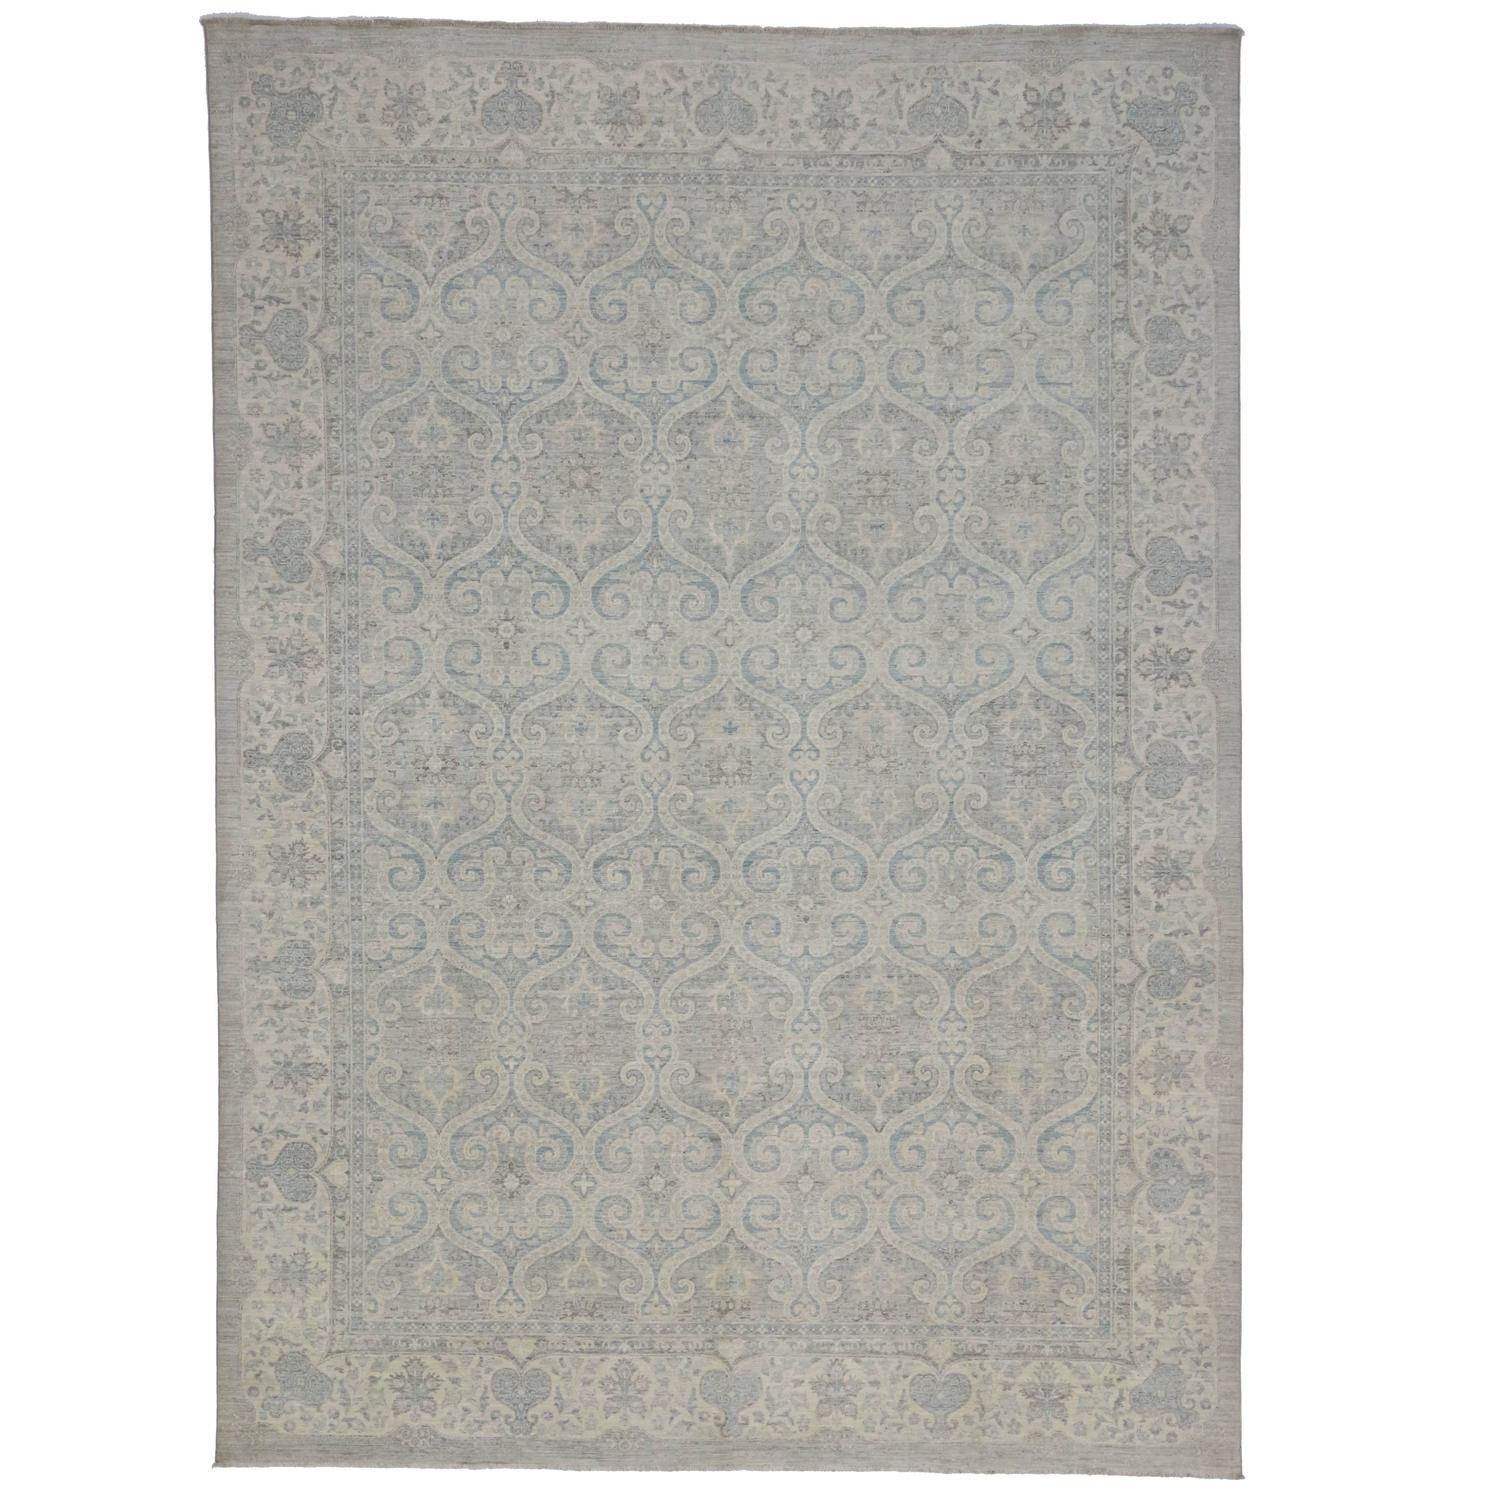 Transitional Rug With Modernized Moroccan Ogee Flavor For